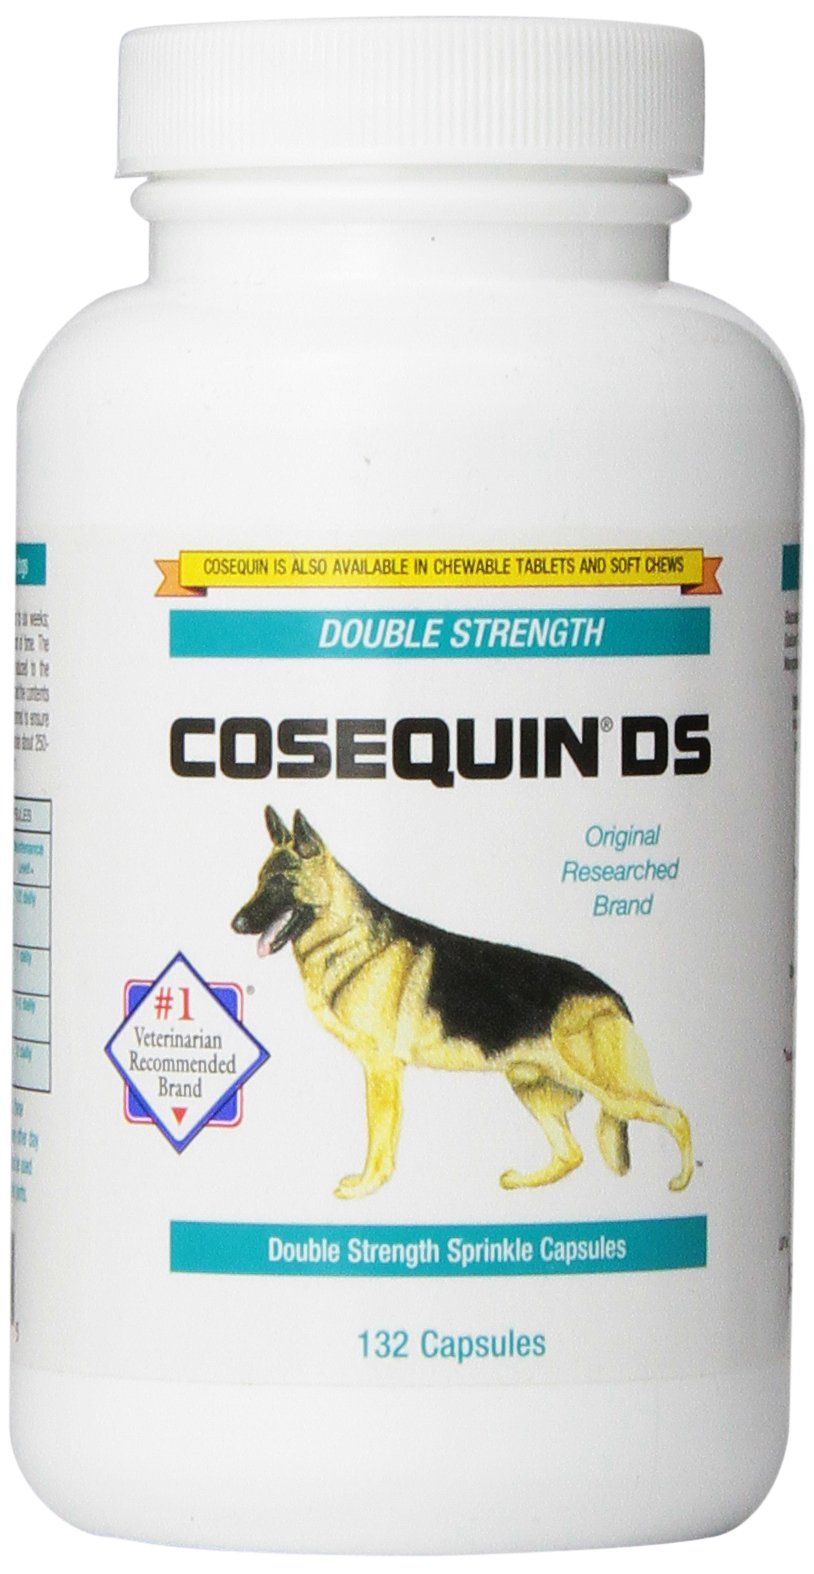 Nutramax Cosequin DS Double Strength Capsules, 132 Count